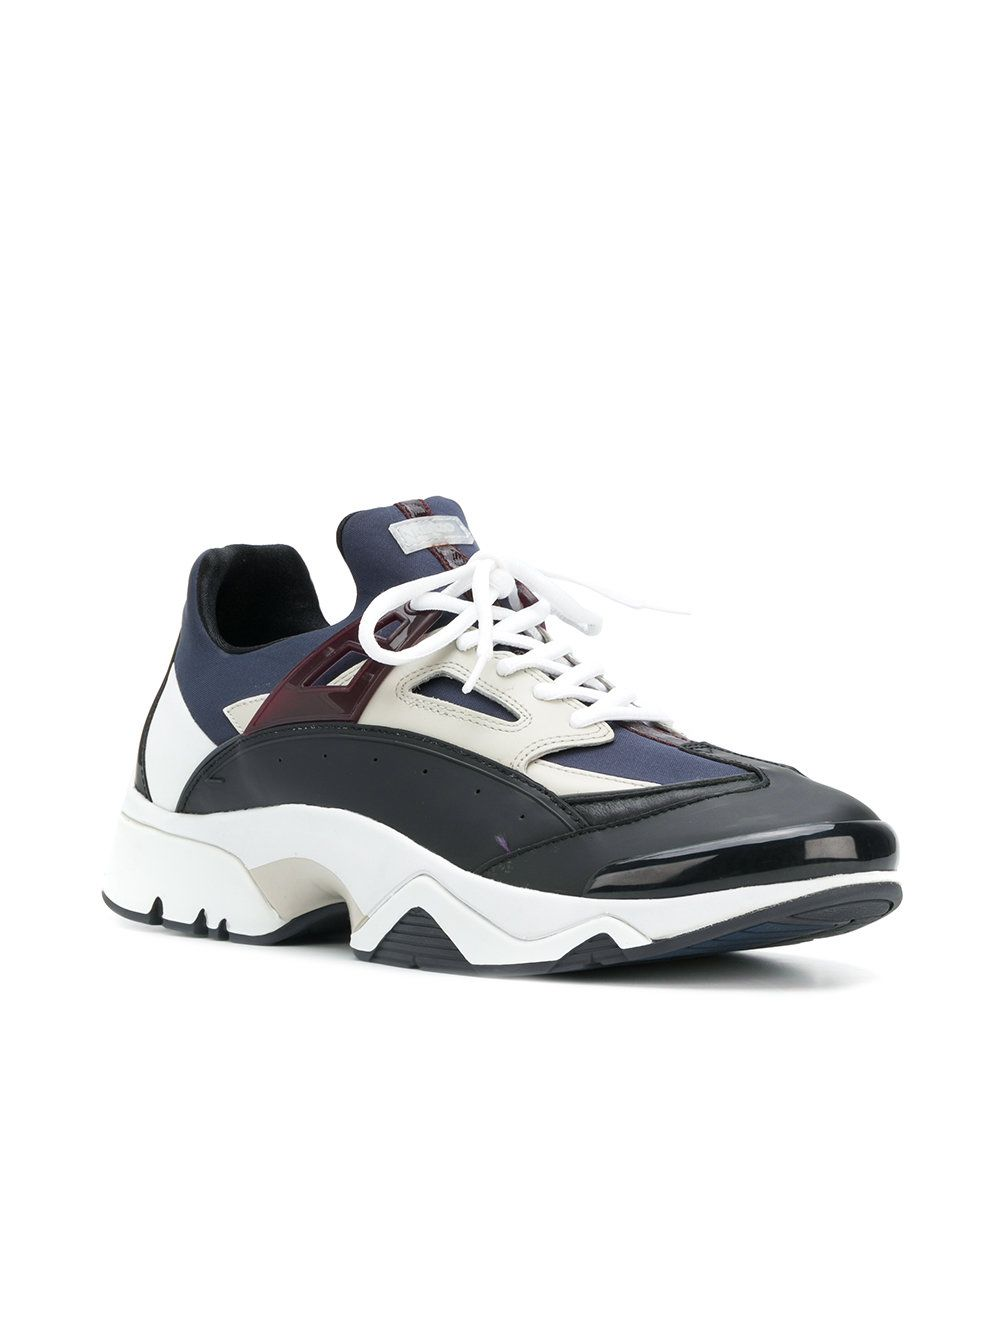 5a4a44528edcc Kenzo chunky panelled sneakers | 鞋鞋观察 in 2019 | Sneakers ...